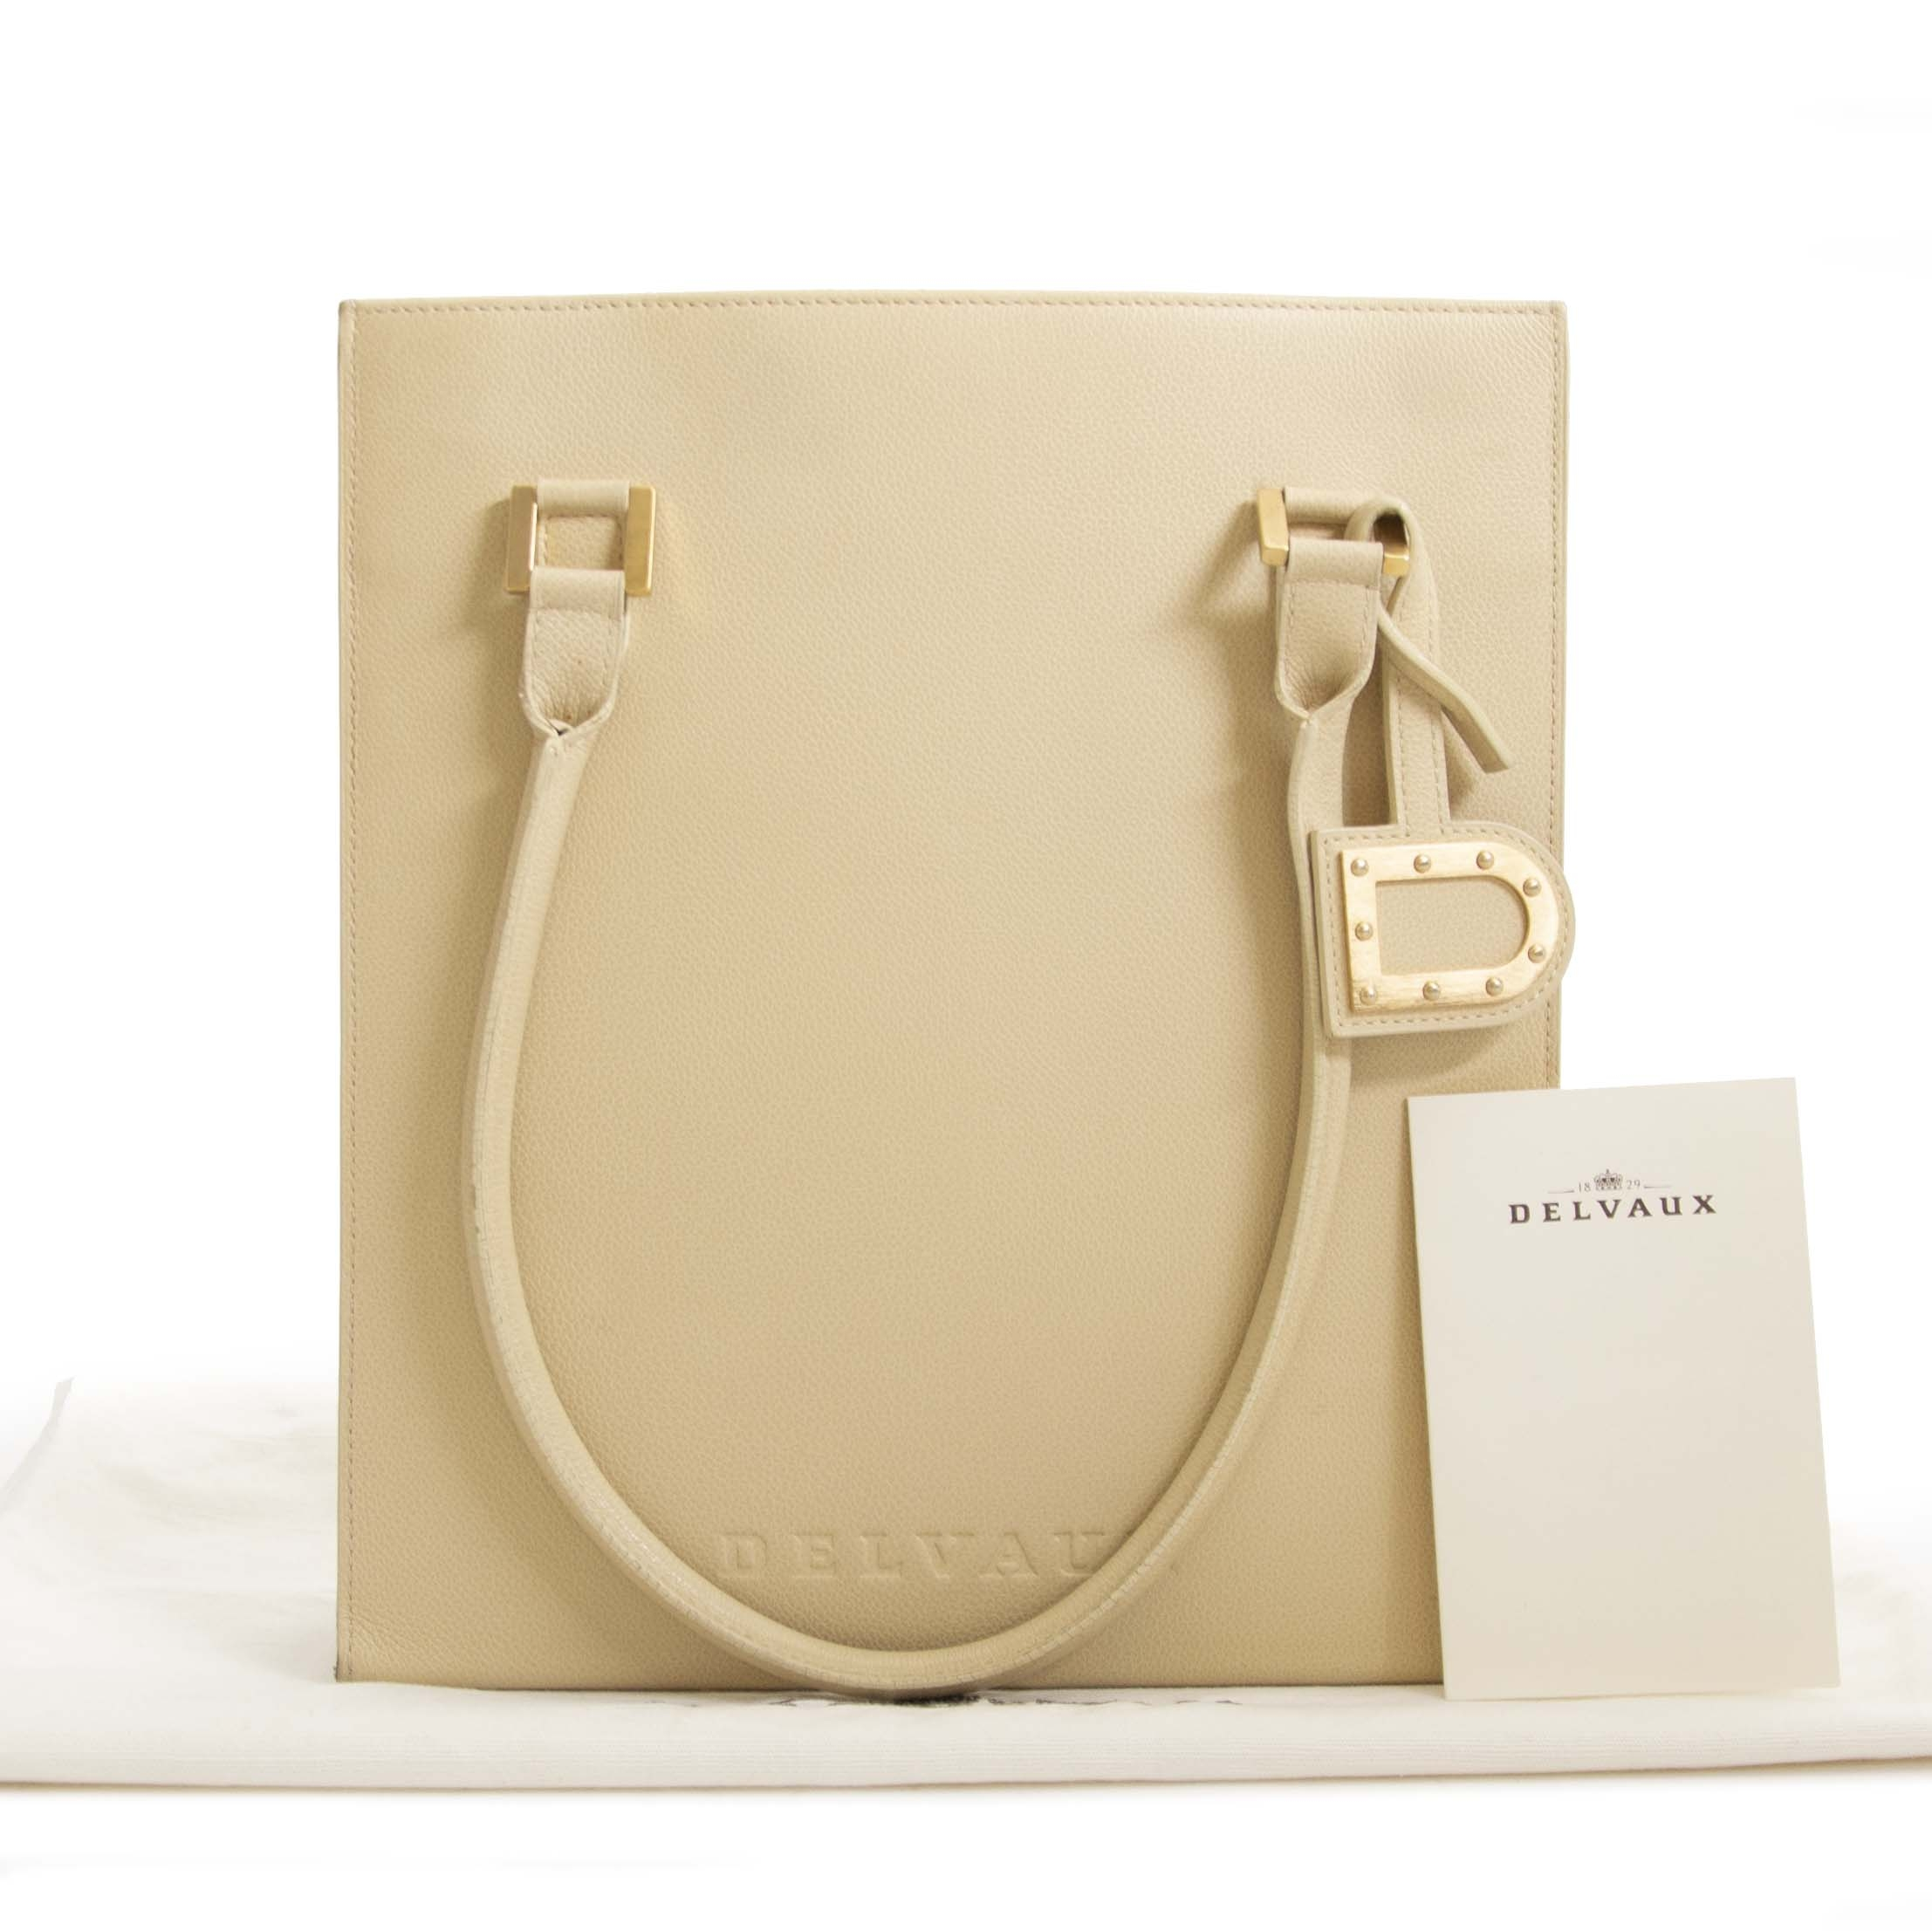 62c6318ee917 ... Authentique seconde main Delvaux Le Jeff Beige achète en ligne webshop  LabelLOV